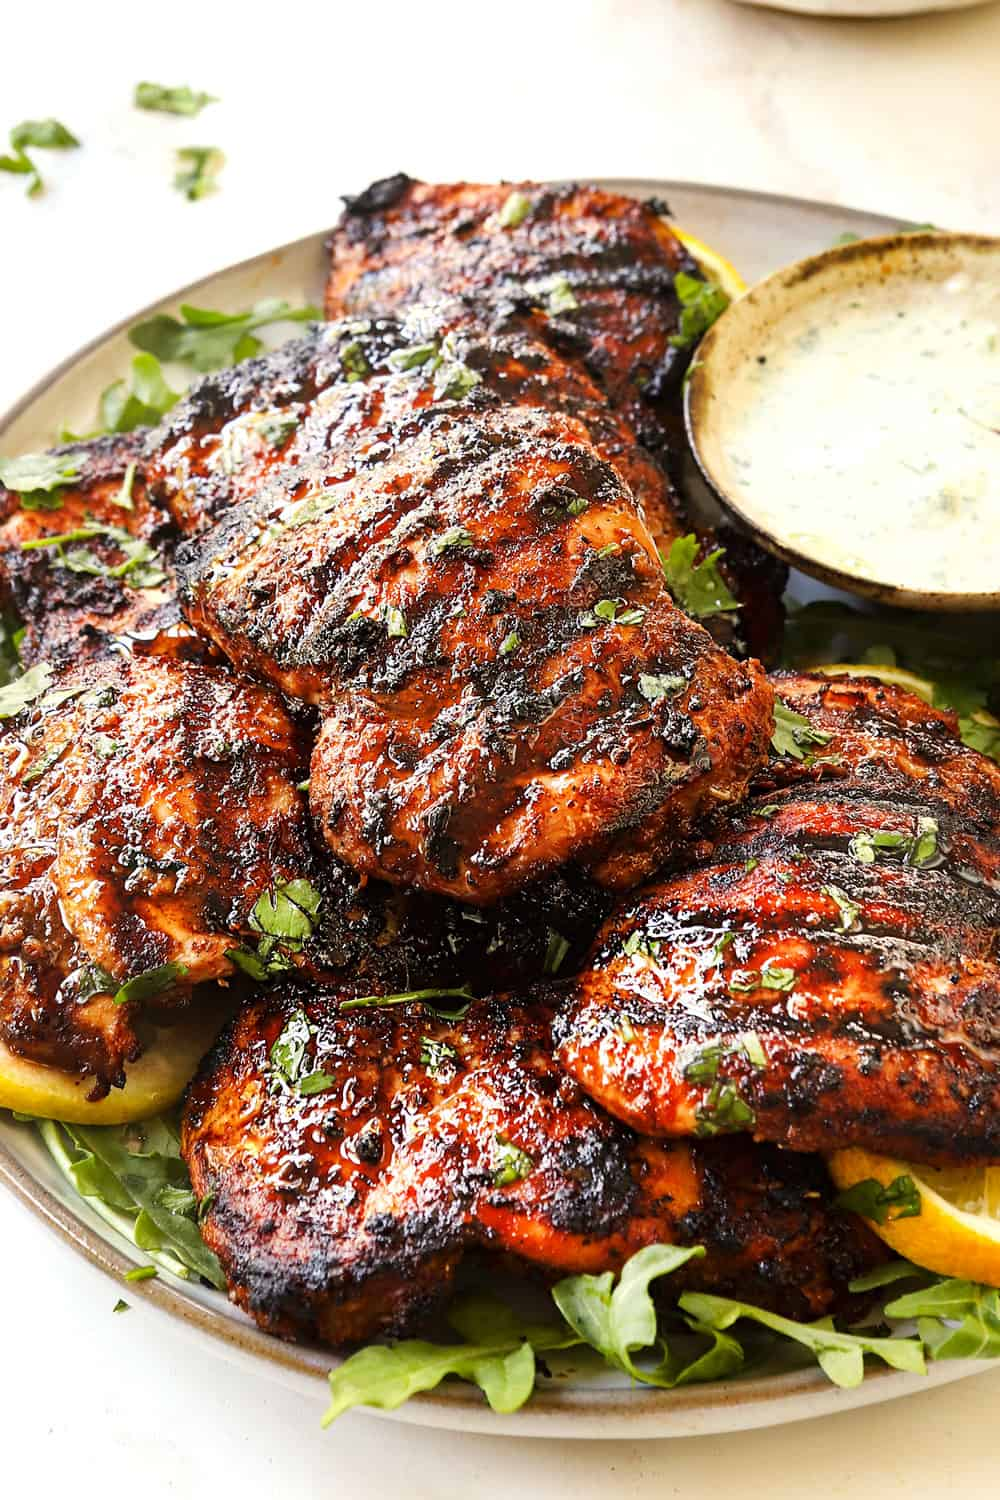 up close of harissa chicken thighs on a platter showing how juicy they are